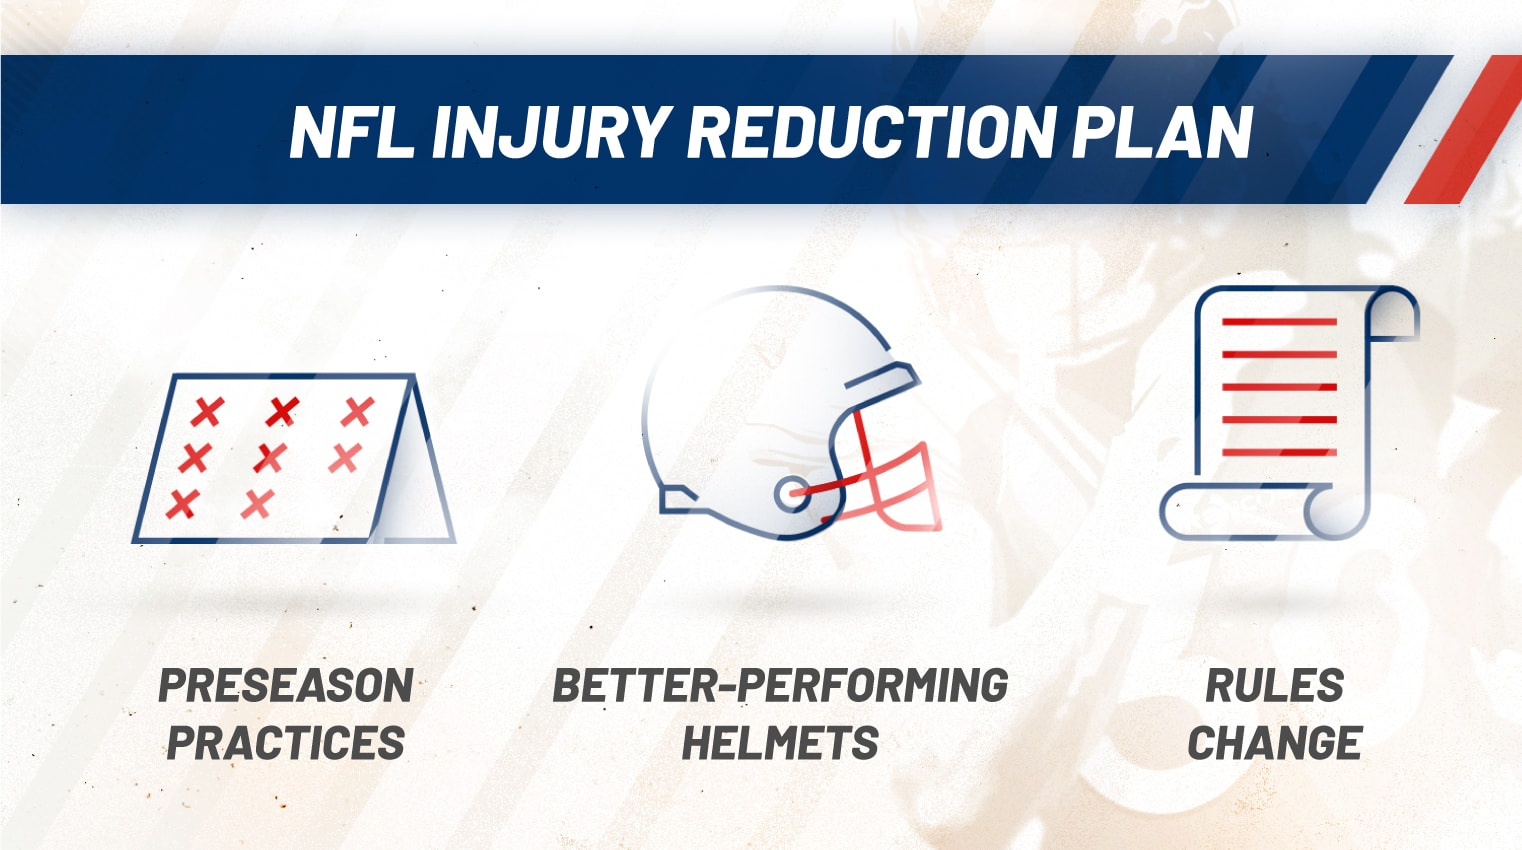 NFL injury reduction plan 2018